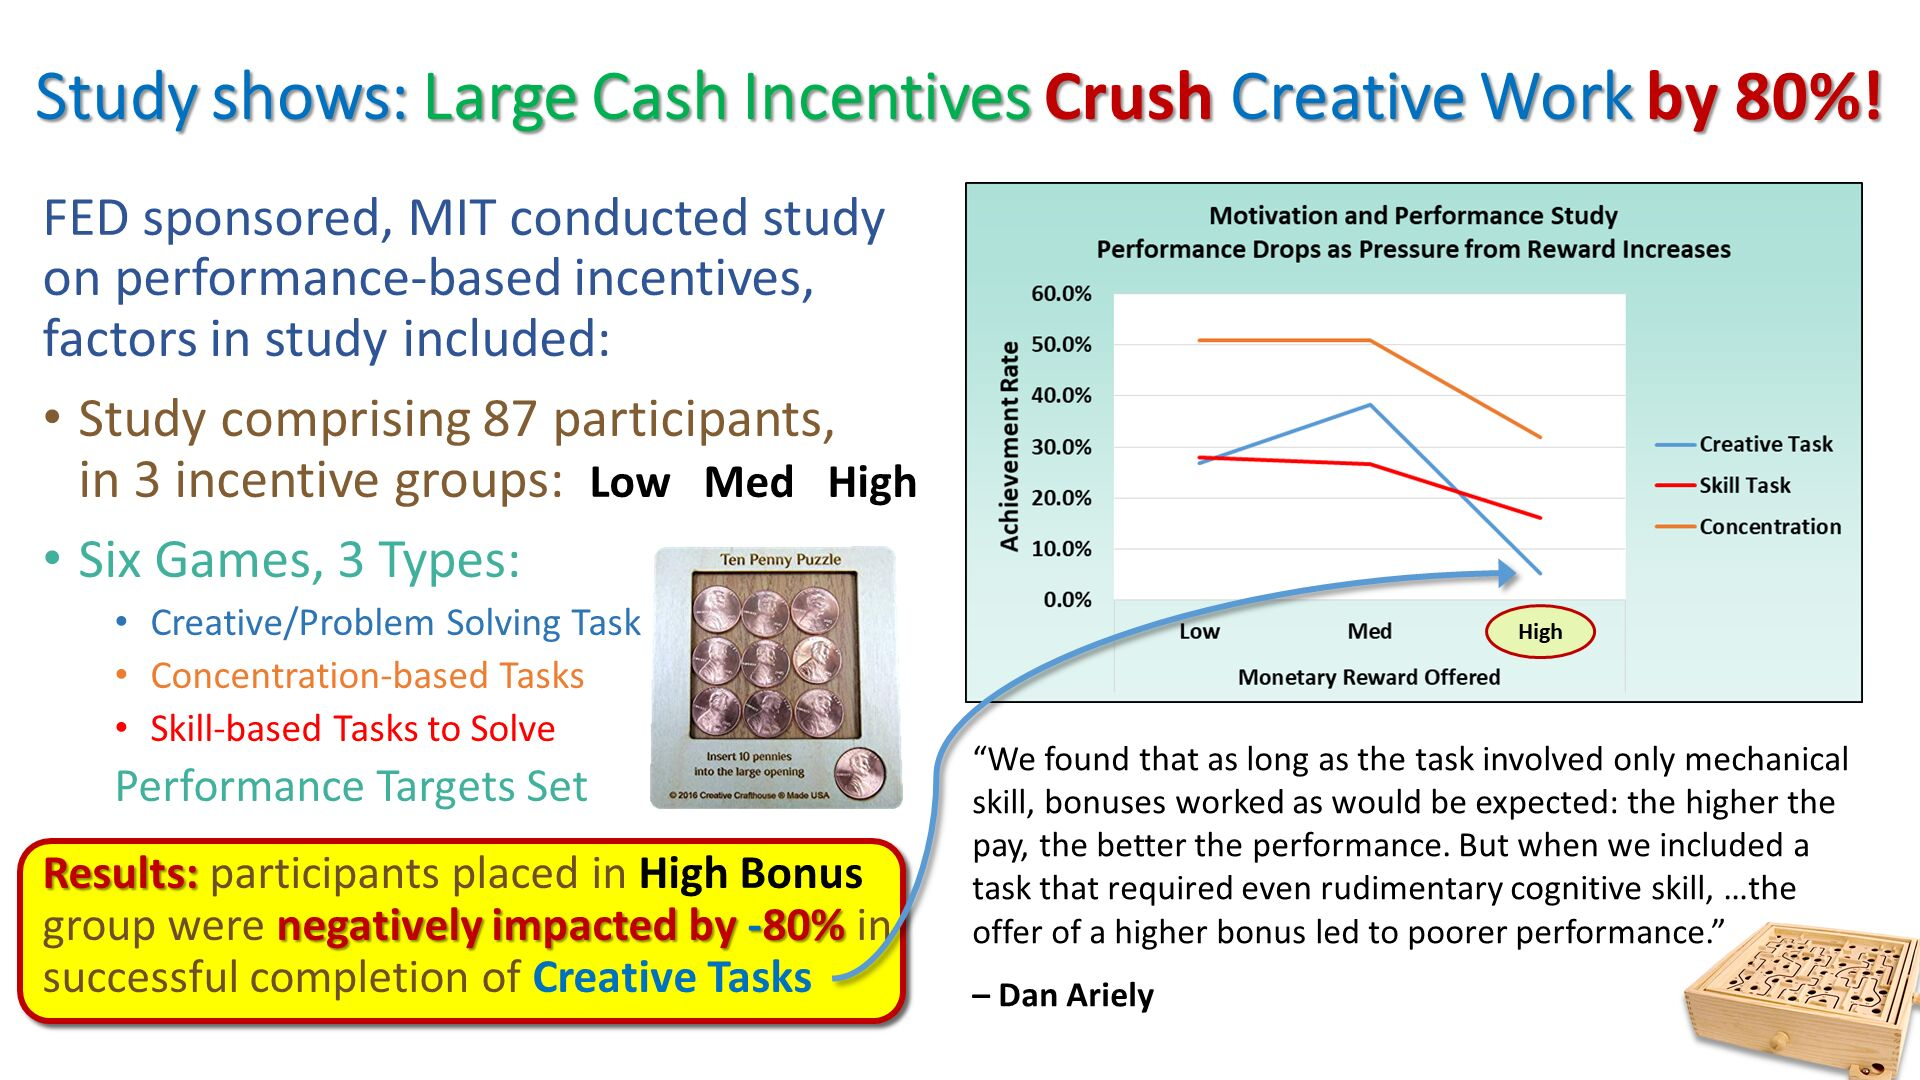 "Study shows: Large Cash Incentives Crush Creative Work by 80%!. ""We found that as long as the task involved only mechanical skill, bonuses worked as would be expected: the higher the pay, the better the performance. But when we included a task that required even rudimentary cognitive skill, …the offer of a higher bonus led to poorer performance."" – Dan Ariely . FED sponsored, MIT conducted study on performance-based incentives, factors in study included: Study comprising 87 participants,in 3 incentive groups:  Low   Med   High Six Games, 3 Types: Creative/Problem Solving Task Concentration-based Tasks Skill-based Tasks to Solve Performance Targets Set Results: participants placed in High Bonus group were negatively impacted by -80% in successful completion of Creative Tasks. High."